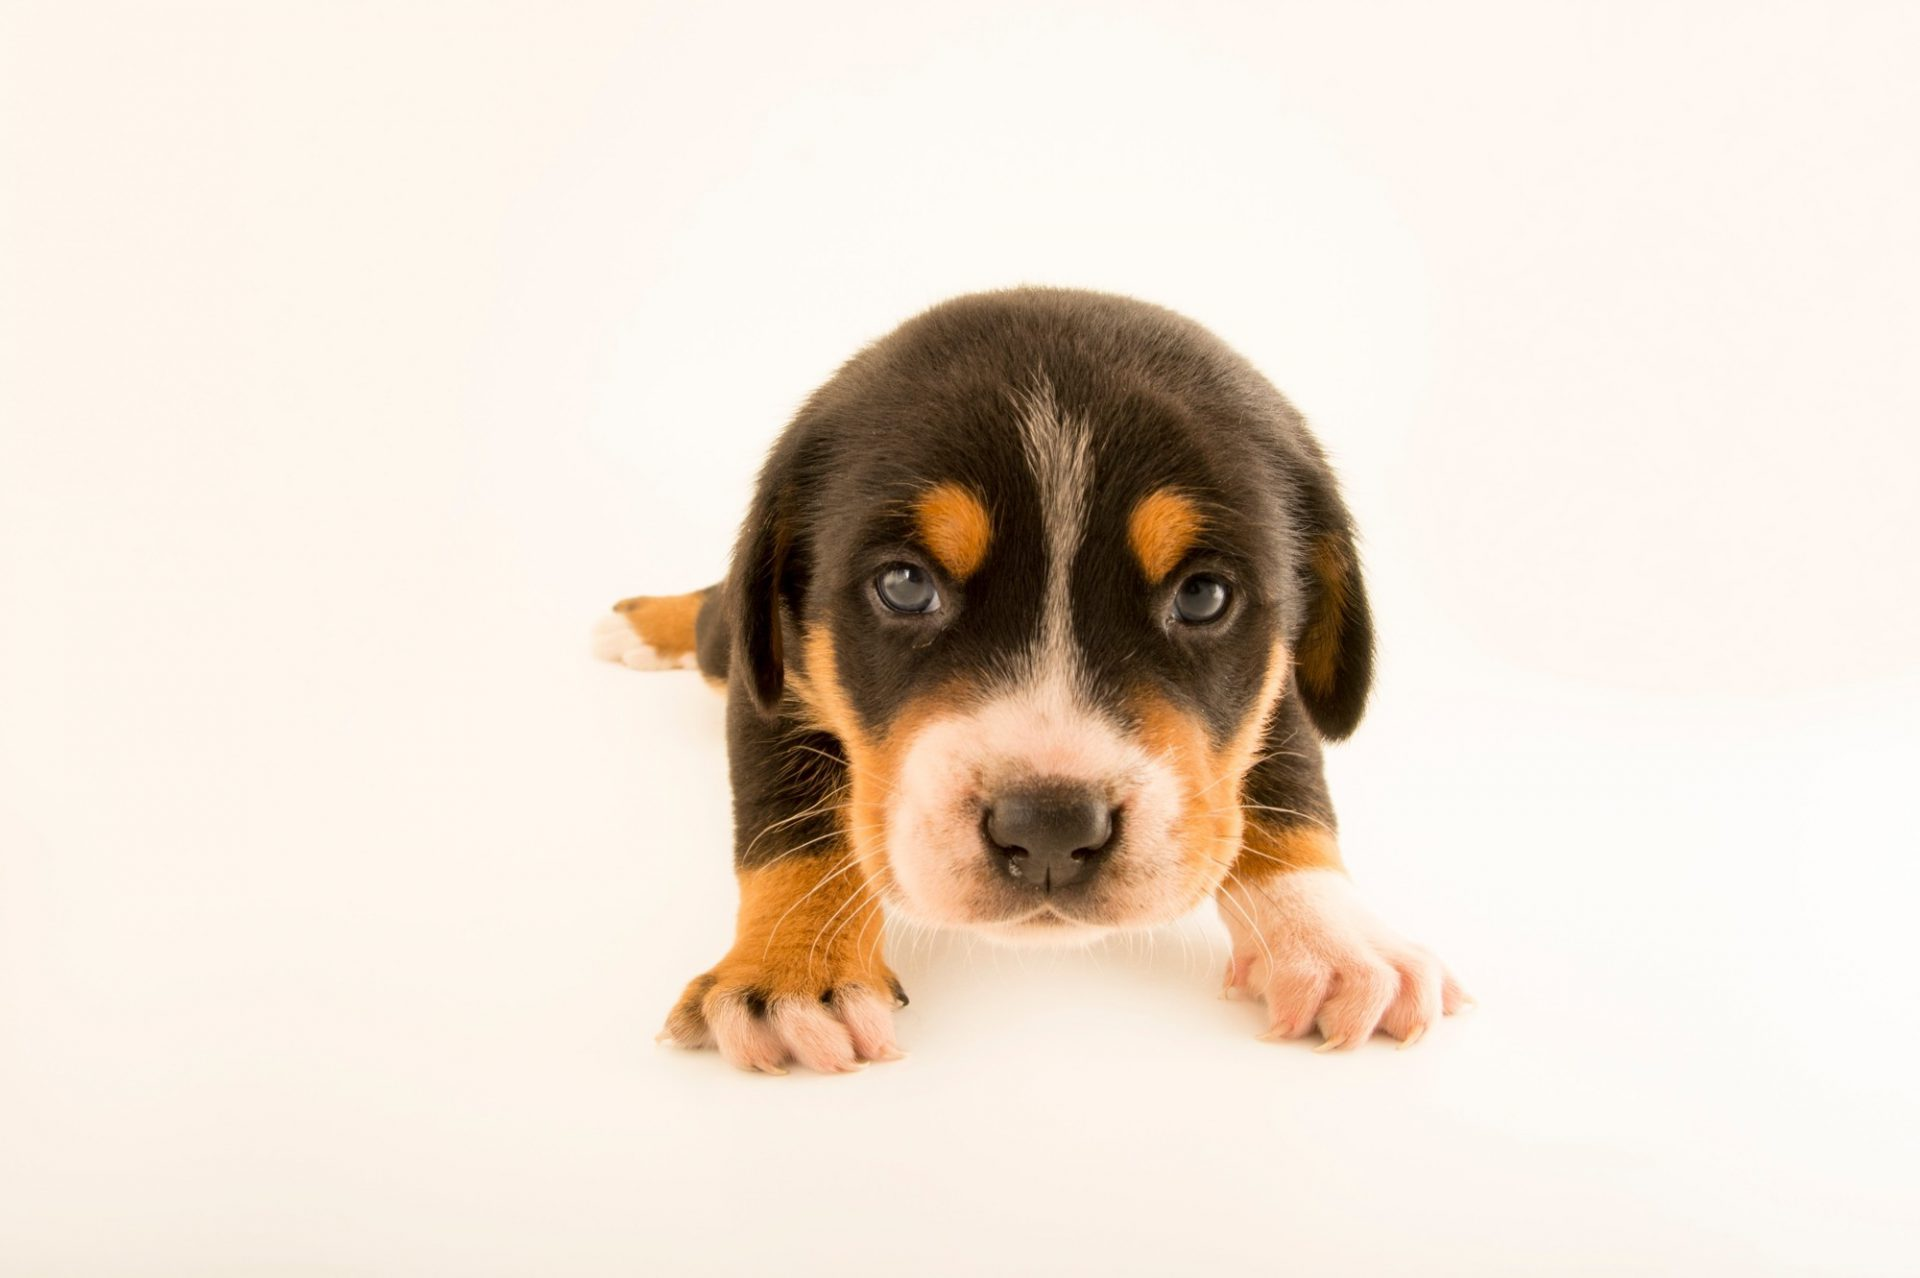 Photo: A one-month-old Greater Swiss mountain dog puppy in Choussy, France.